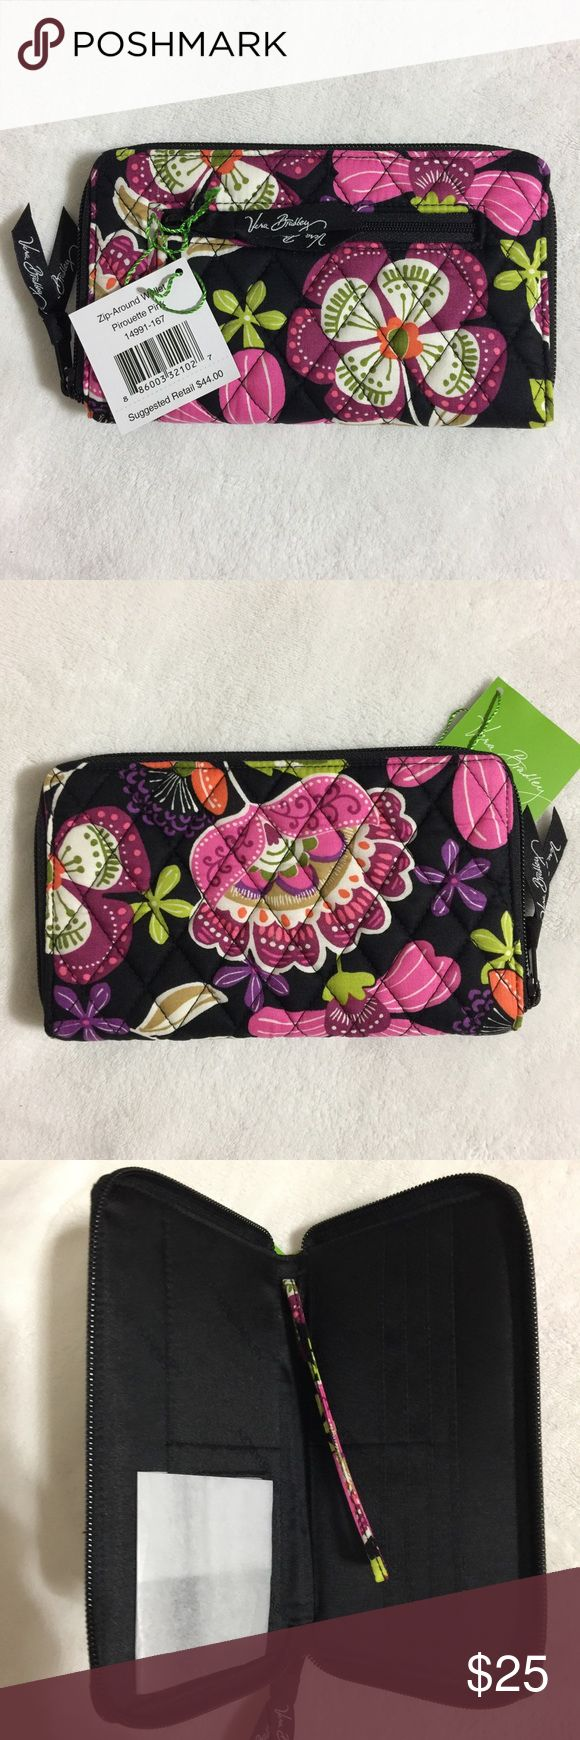 """Vera Bradley Zip Around Wallet Pirouette Pink NEW WITH TAGS Authentic Vera Bradley Zip Around Wallet with wrist strap in Pirouette Pink  • Dimensions: 8"""" x 5""""  • Exterior change pocket  • Interior: full length cash slip pocket, seven card slots, ID compartment and wrist strap. • MSRP $44.00  * Comes from a smoke free pet free home. * Pattern placement may be different than pictured, have more than one for sale.  🎀 I have more VERA BRADLEY, Check out my other items!  ❌ PRICE FIRM  ❤️ LIKE ME…"""